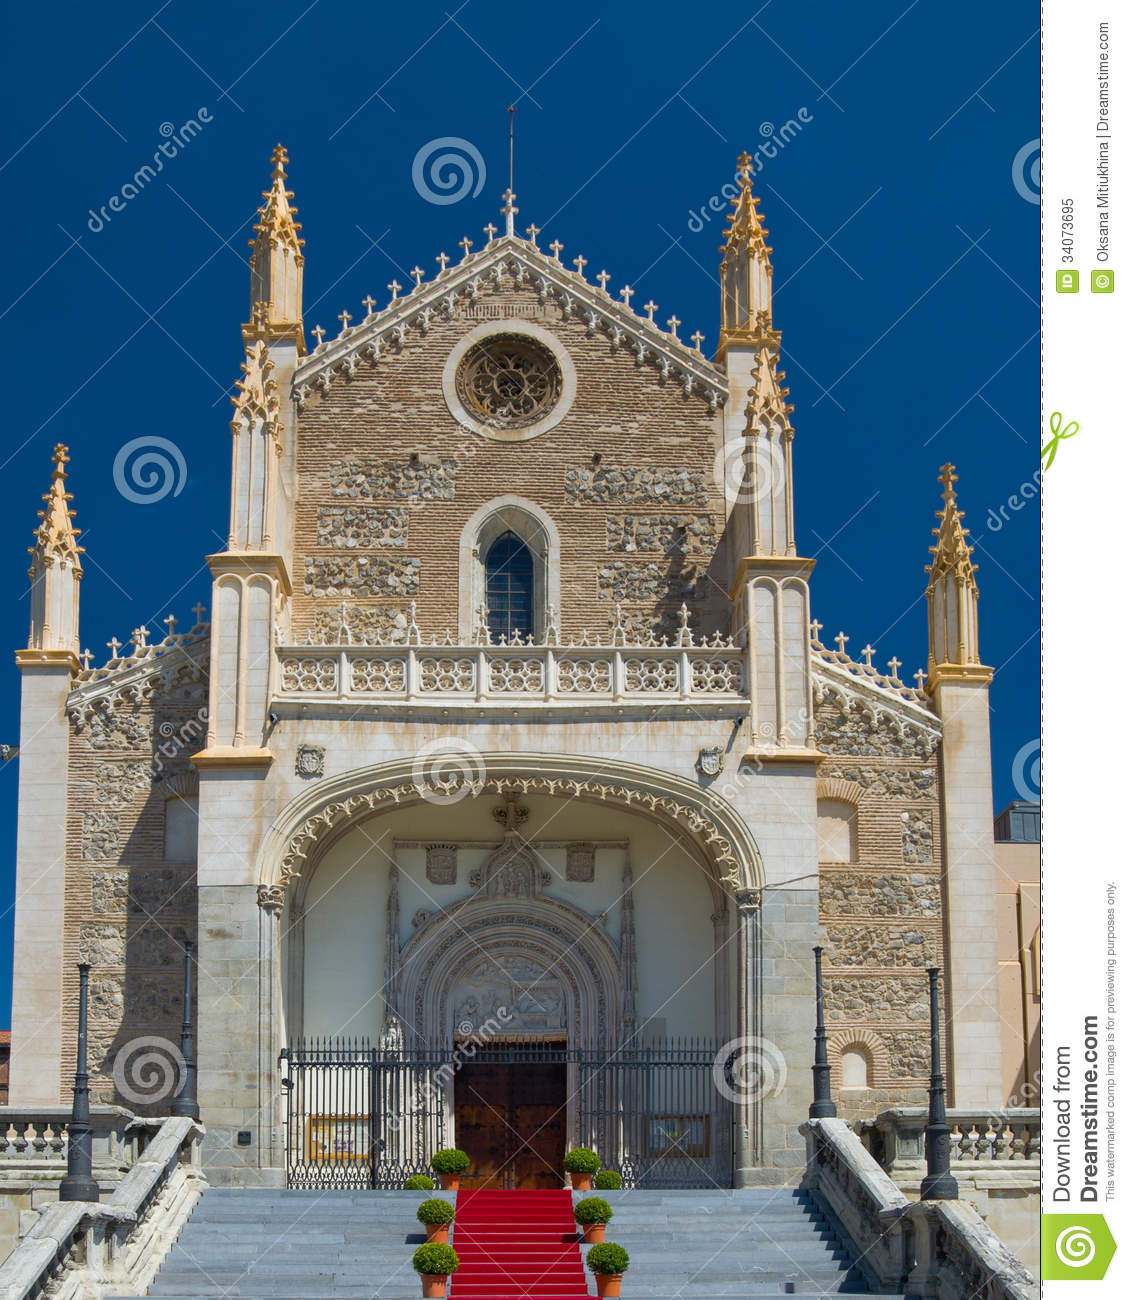 St jerome royal church in madrid royalty free stock photo image